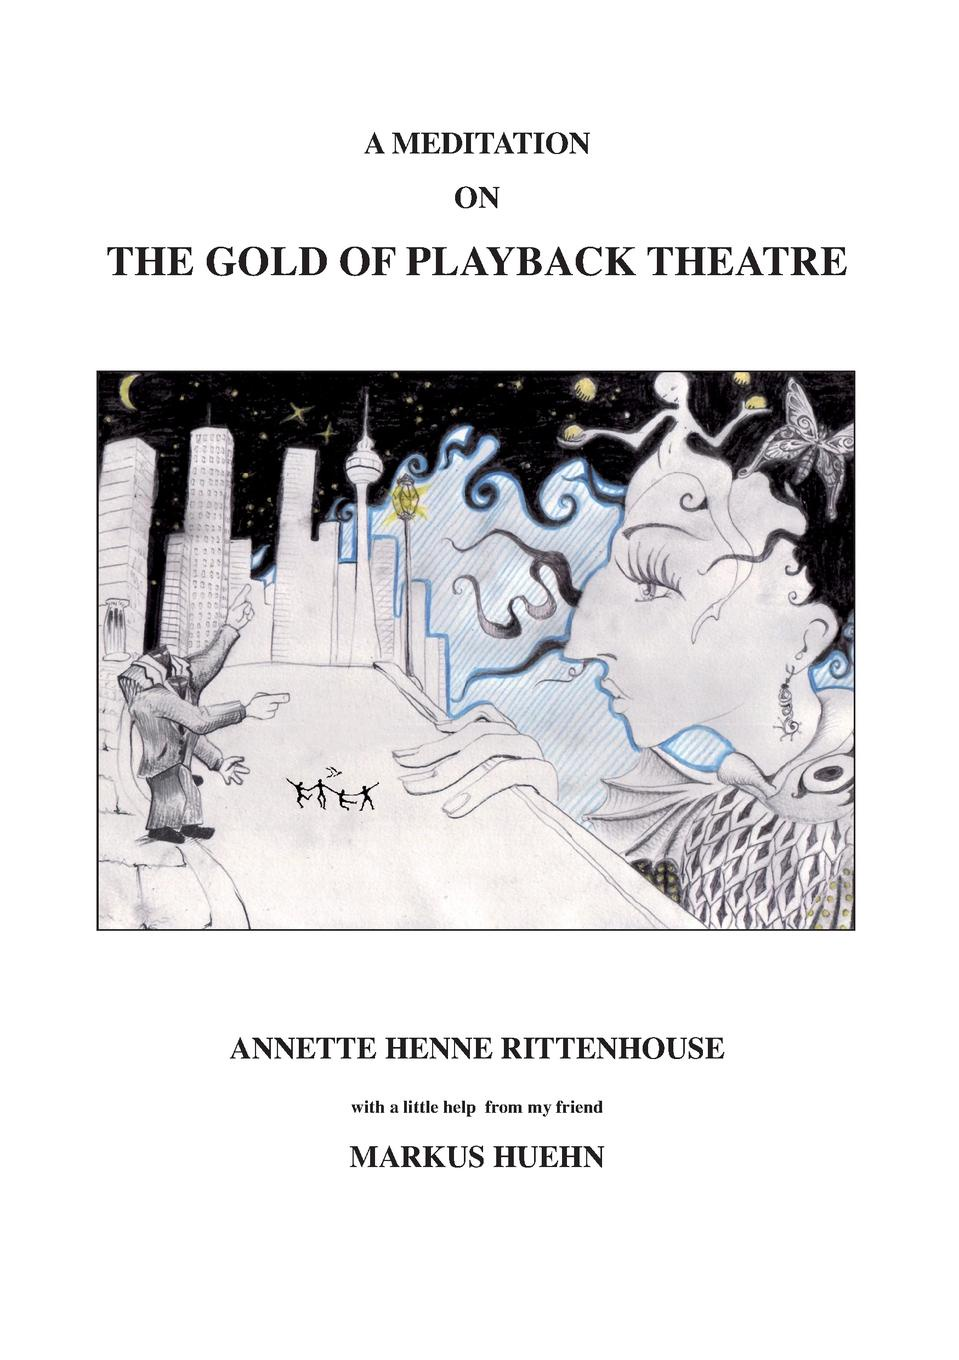 Annette Henne Rittenhouse, Annette Henne Rittenhouse, Markus Huehn A Meditation On The Gold Of Playback Theatre theatre show stker book